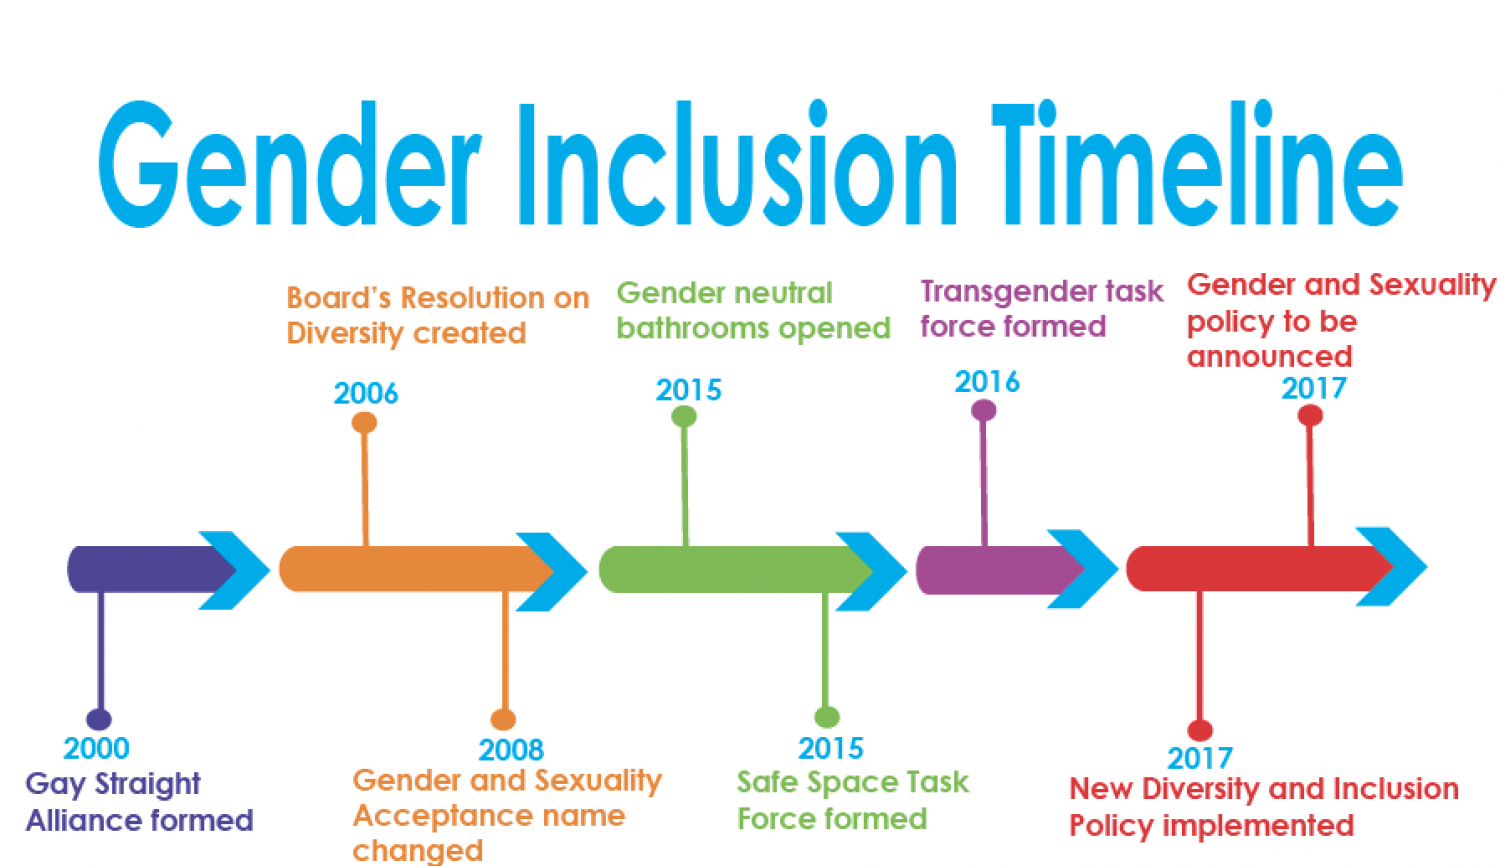 Gender+and+sexuality+acceptance+and+celebration+isn%27t+a+new+phenomenon+at+SPA.+Actions+towards+more+inclusion+in+recent+years+reflect+an++increase+in+feeling+comfortable+with+gender+identity.+